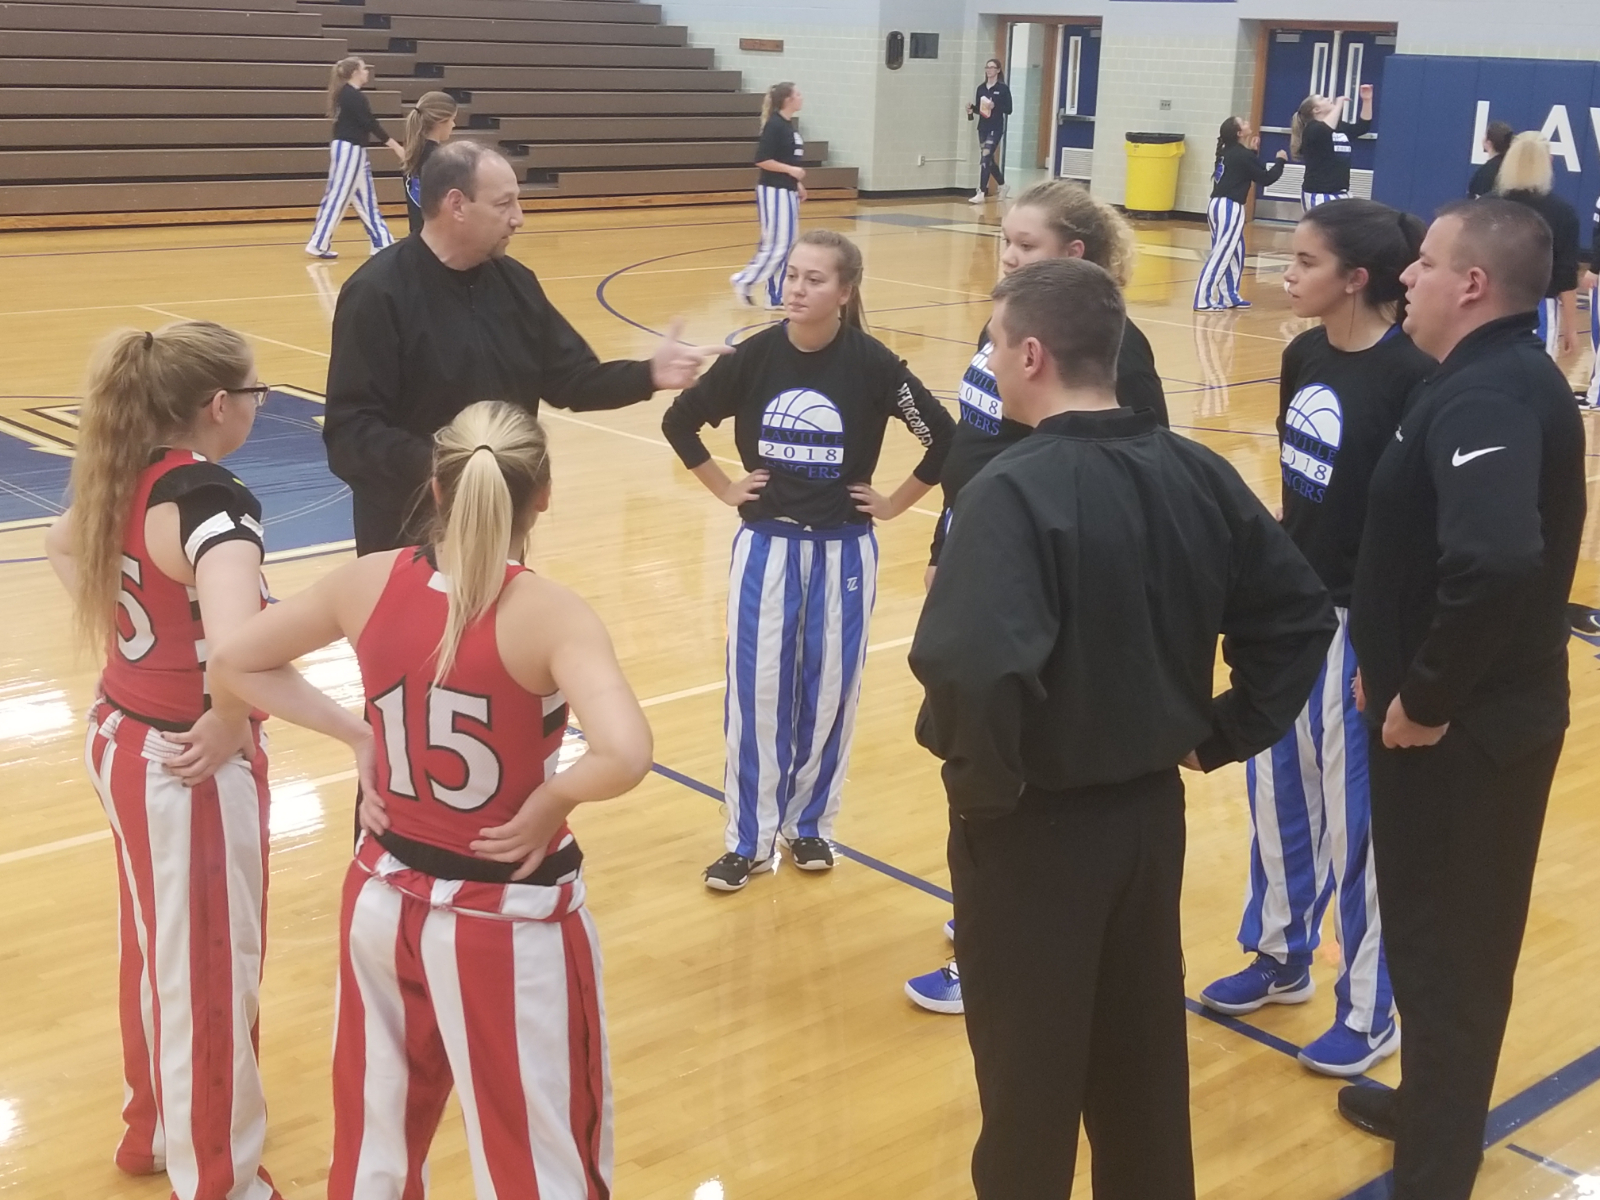 Press Too Much For LaVille Lady Hoops In Loss To OD